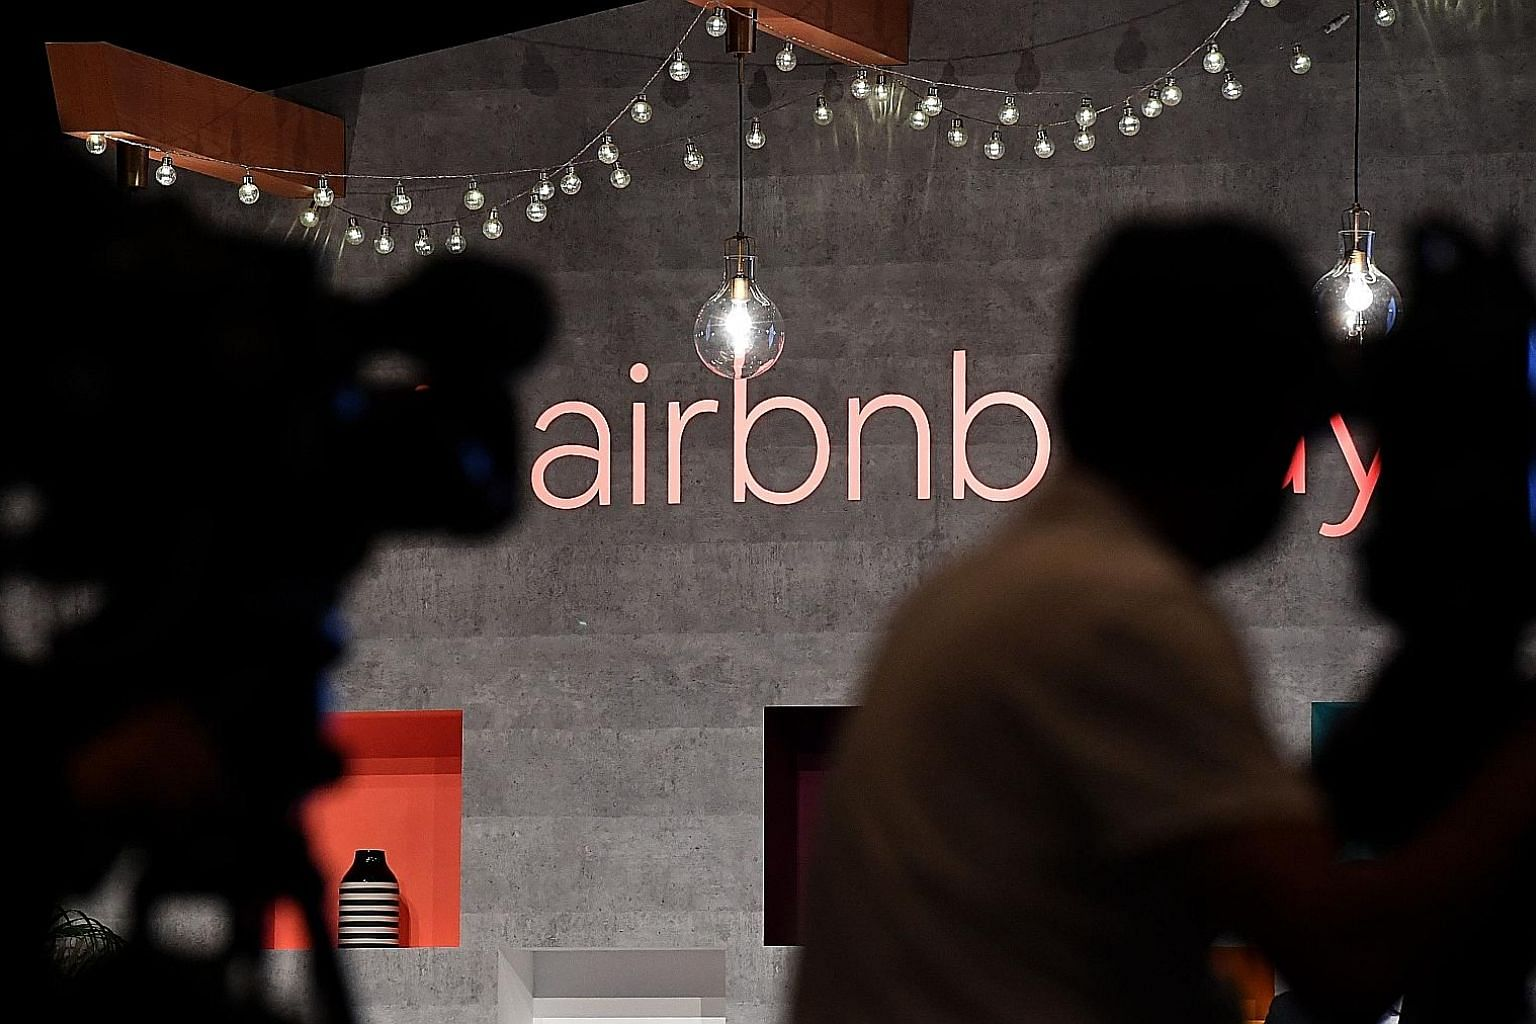 Airbnb's gross bookings - a sum that includes money paid to hosts - had rebounded in recent weeks, chief executive Brian Chesky indicated on a videoconference with employees. The firm is under staff pressure to go public; shares held by early employe